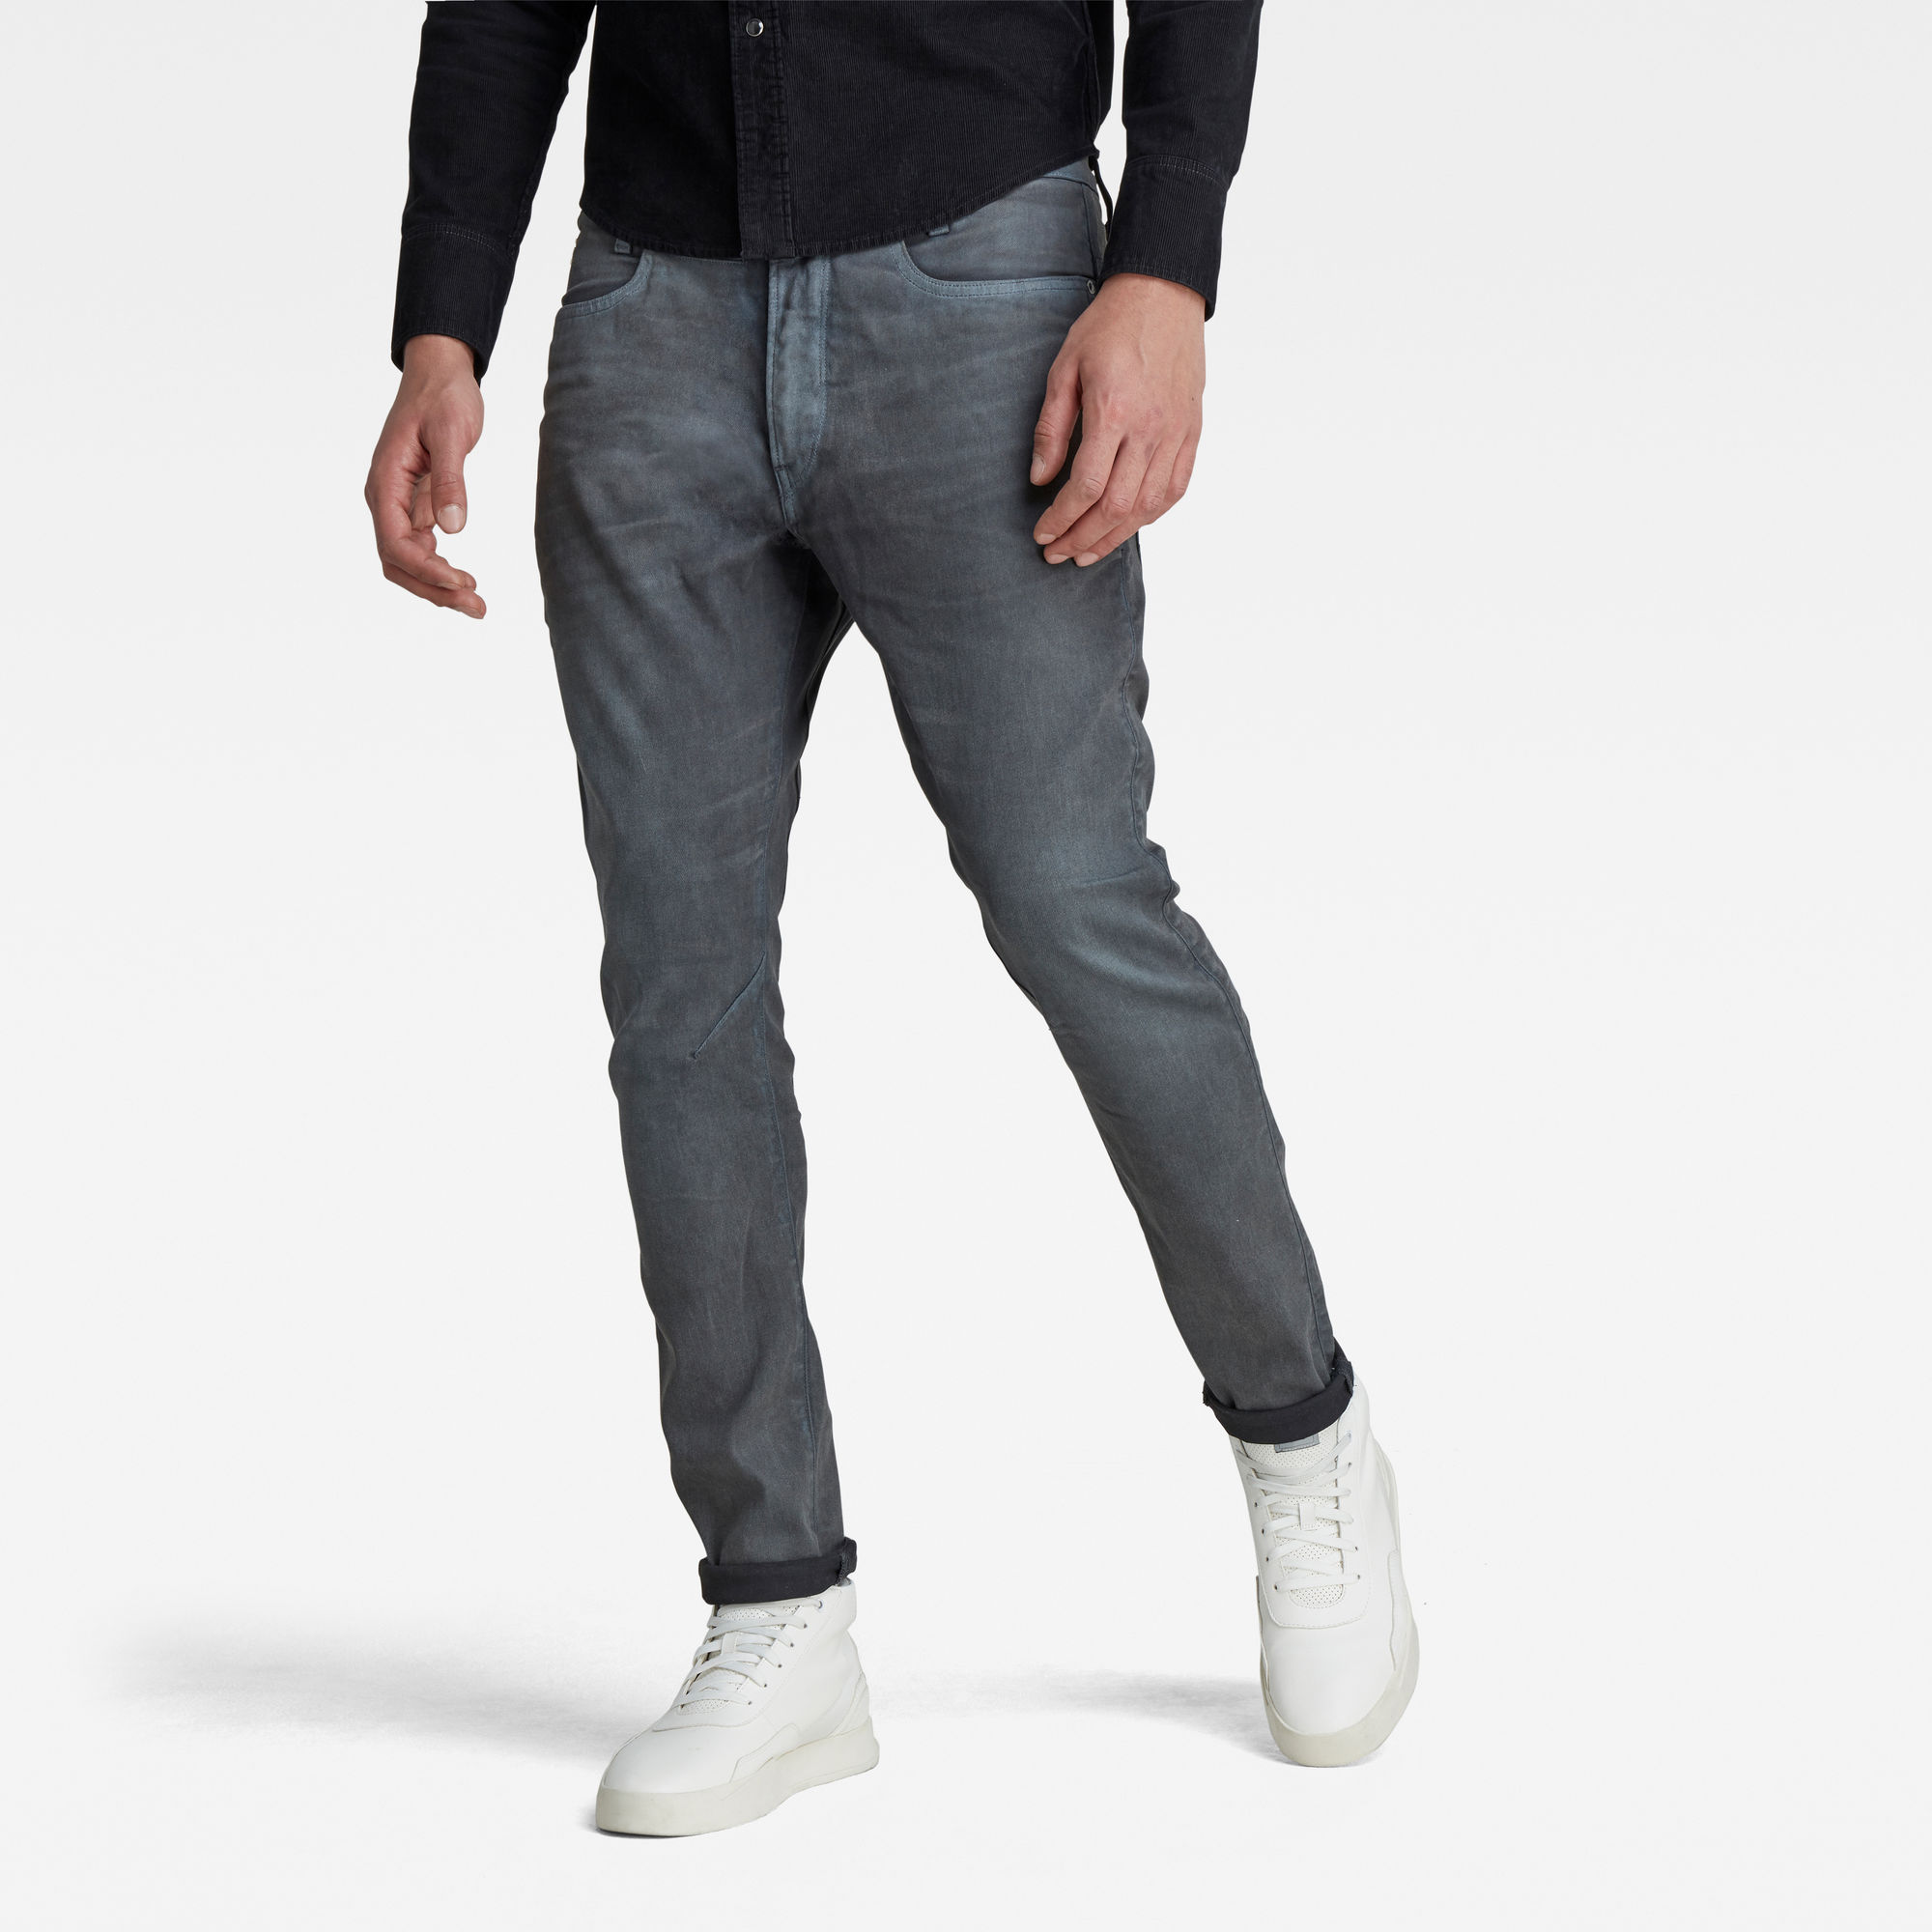 Image of G Star Raw D-Staq 3D Skinny Jeans